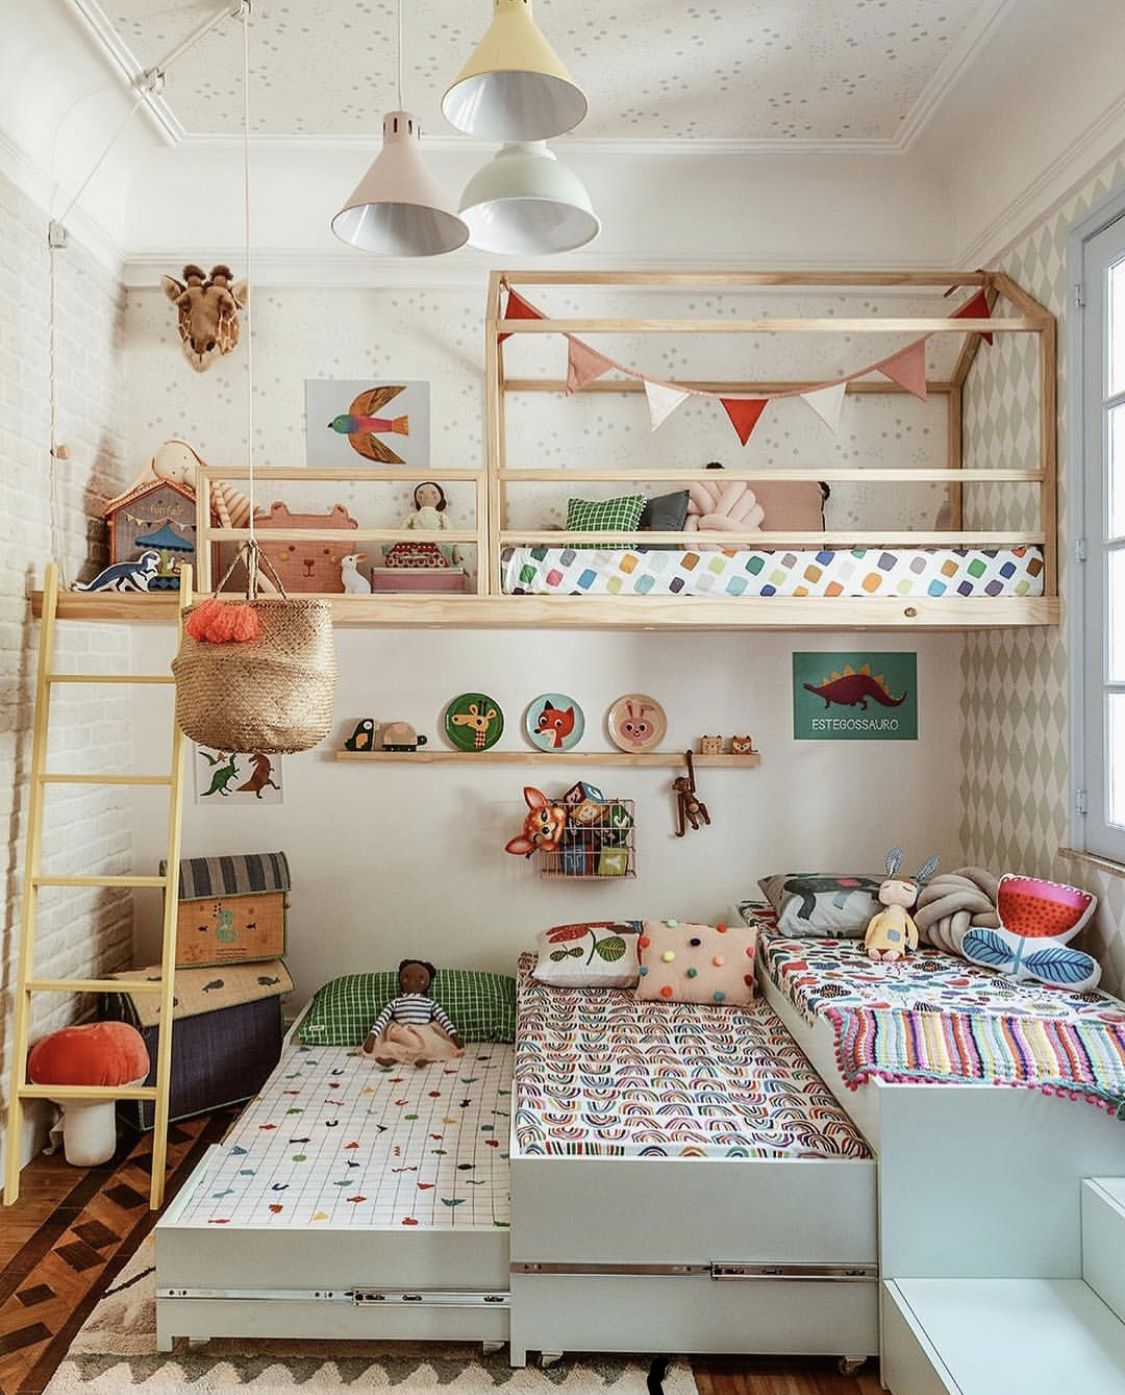 Pin By Skyler Smith On Au Lit Les Minipouces Shared Kids Room Kid Room Decor Girl Room Concept cool kids rooms